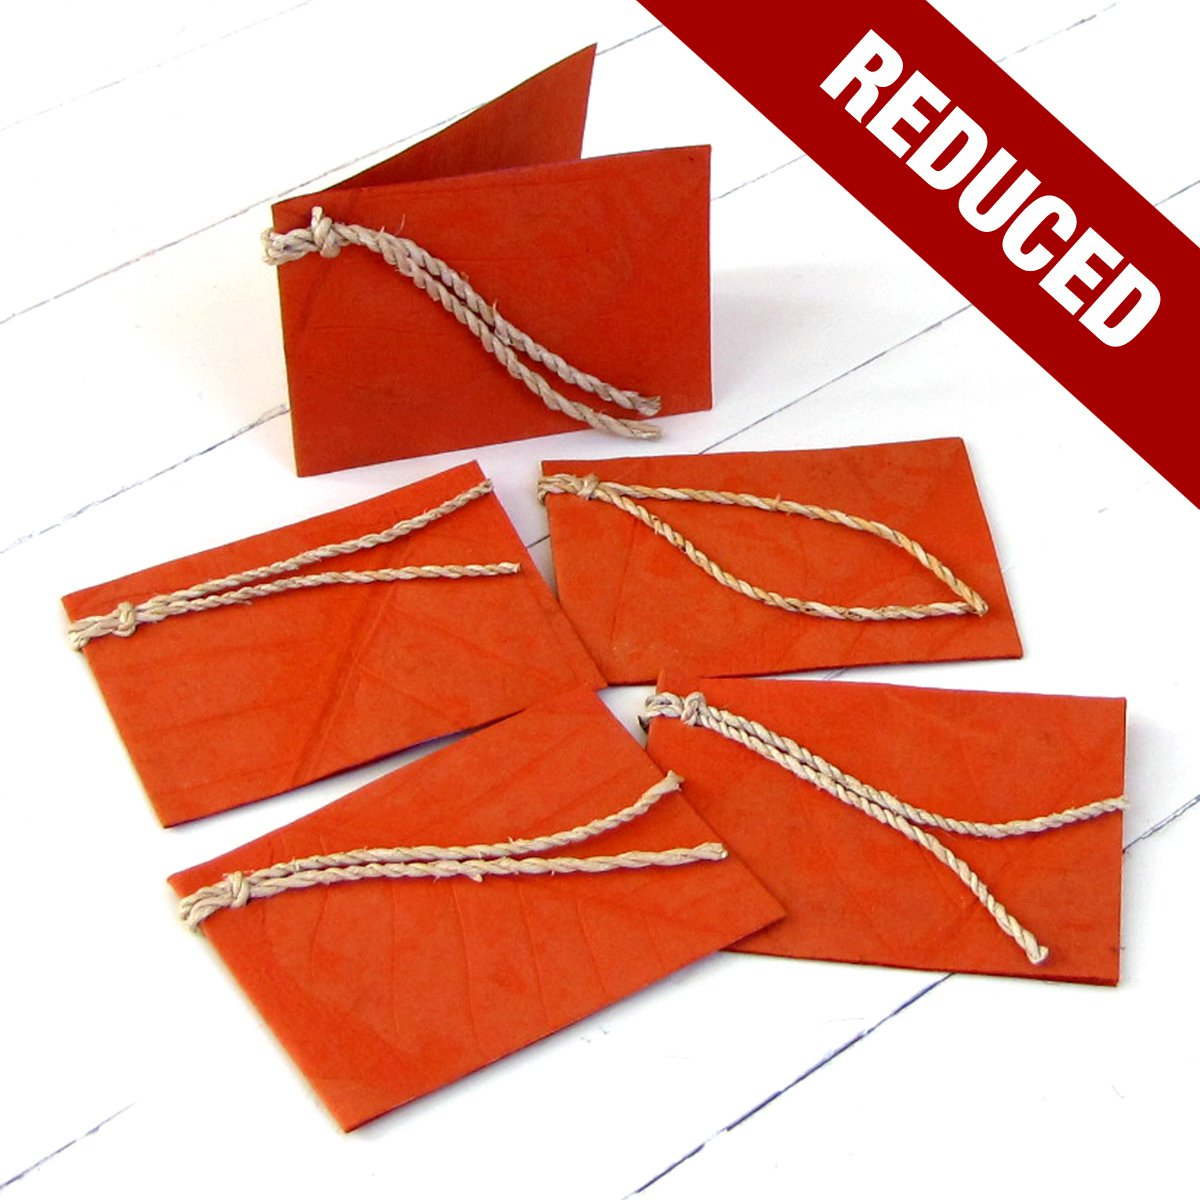 5 handmade 3x2.5 gift tags dark orange natural leaf imprint paper